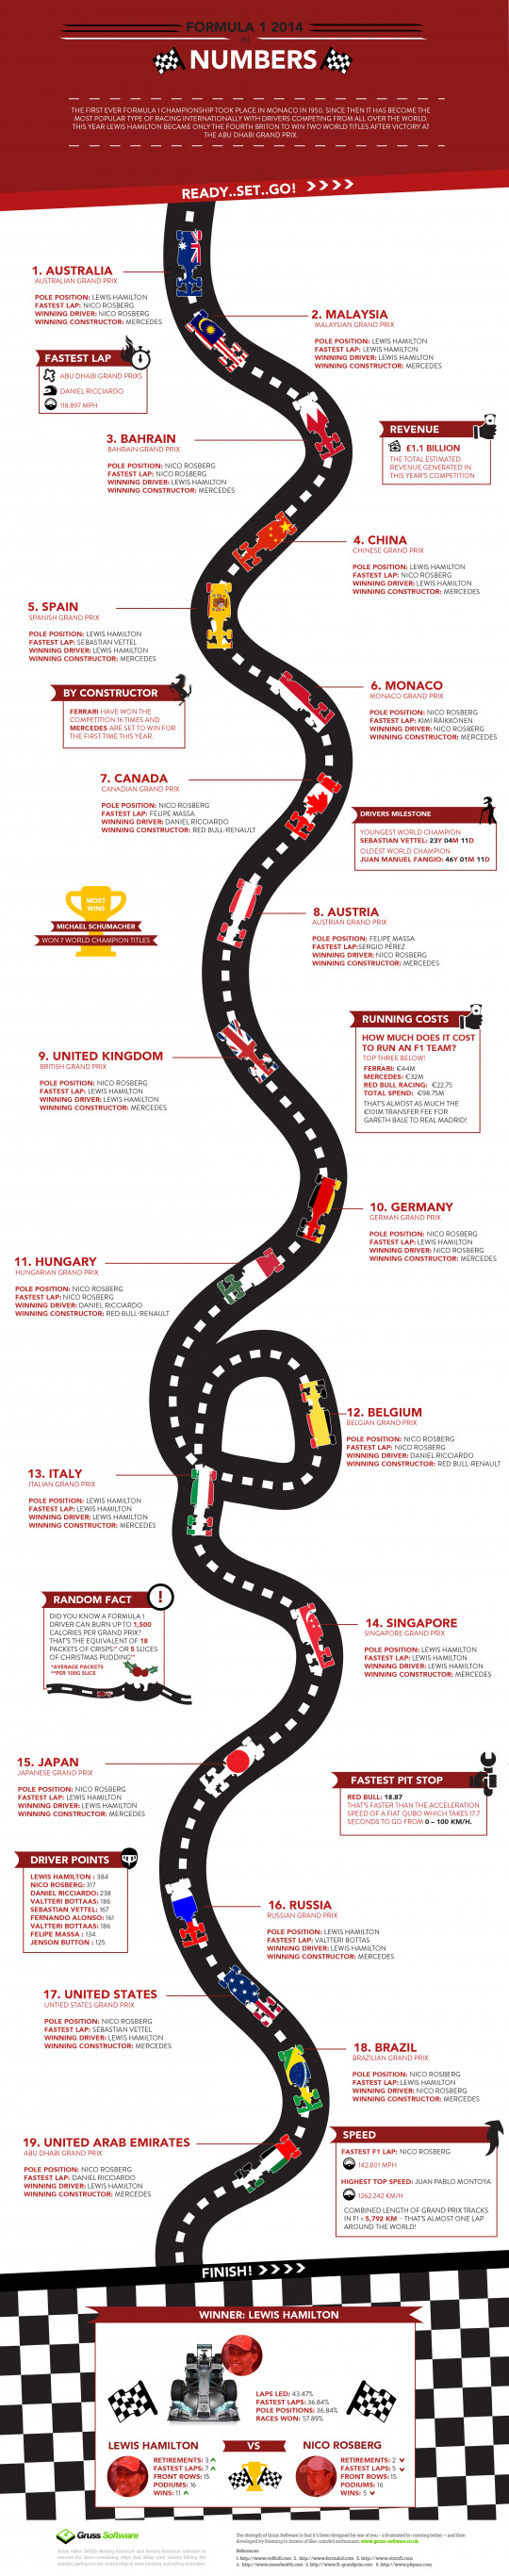 F1 Competition 2014 in Numbers